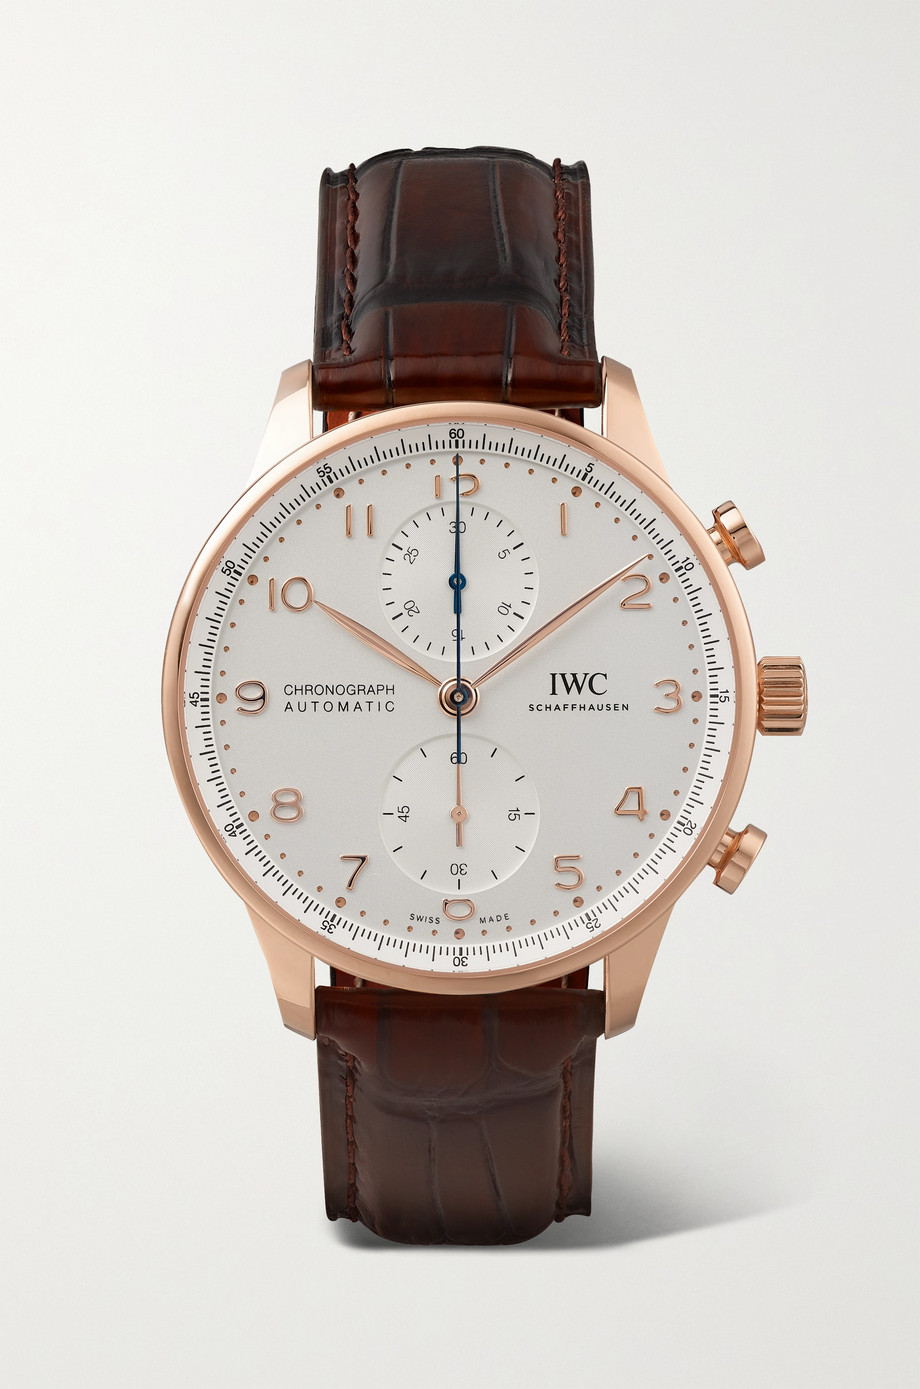 IWC SCHAFFHAUSEN Portugieser Automatic Chronograph 41mm 18-karat red gold and alligator watch